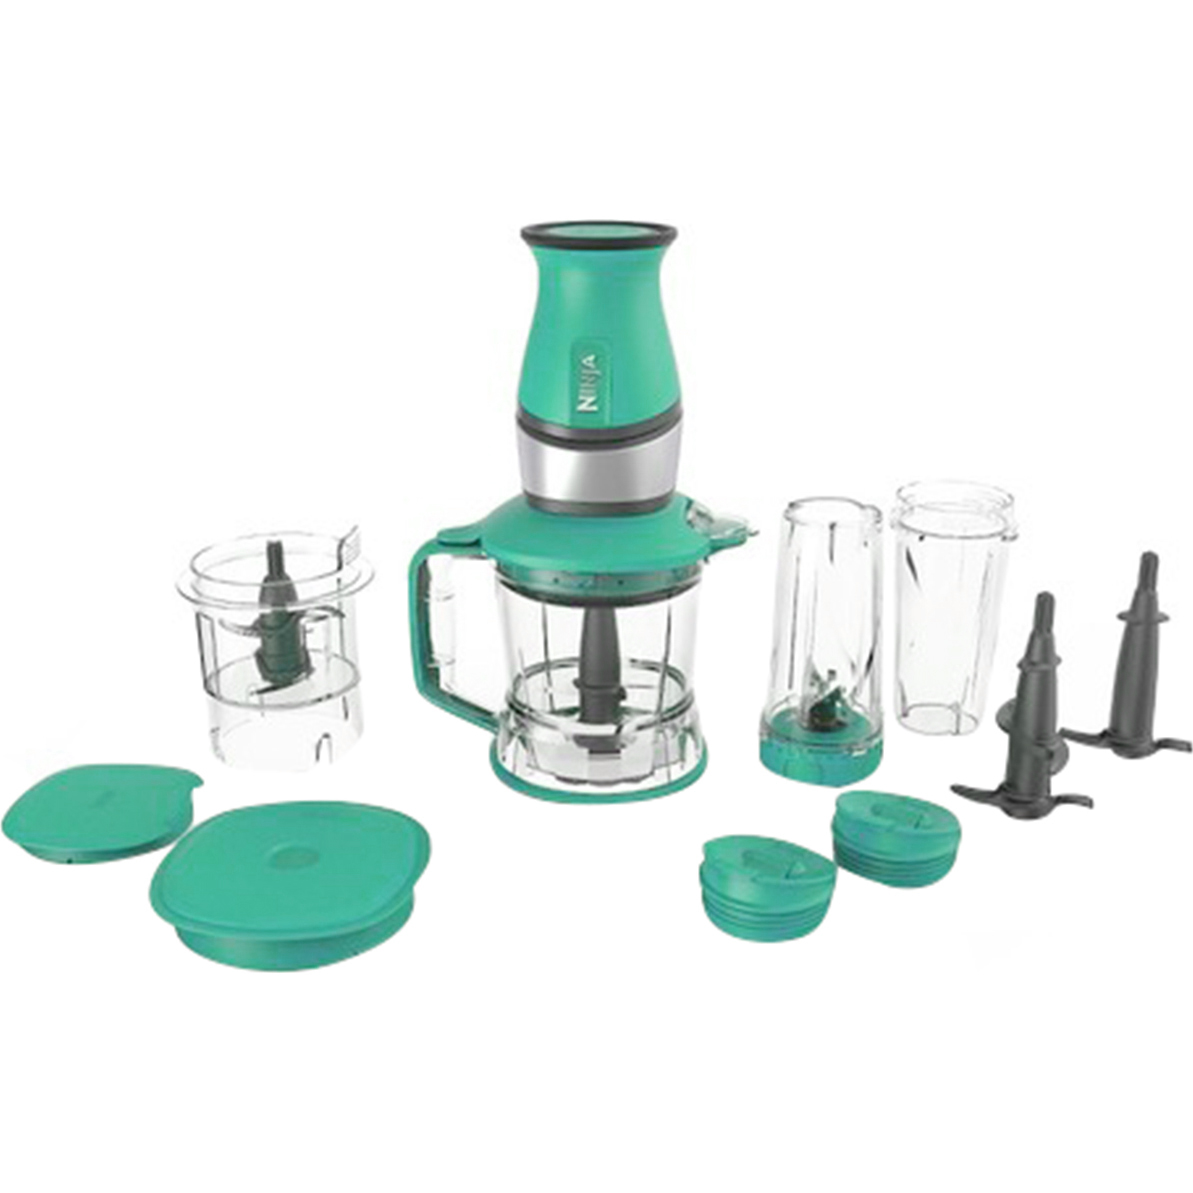 Refurbished Nutri Ninja 700W 2-in-1 Blender and Processor, QB3000